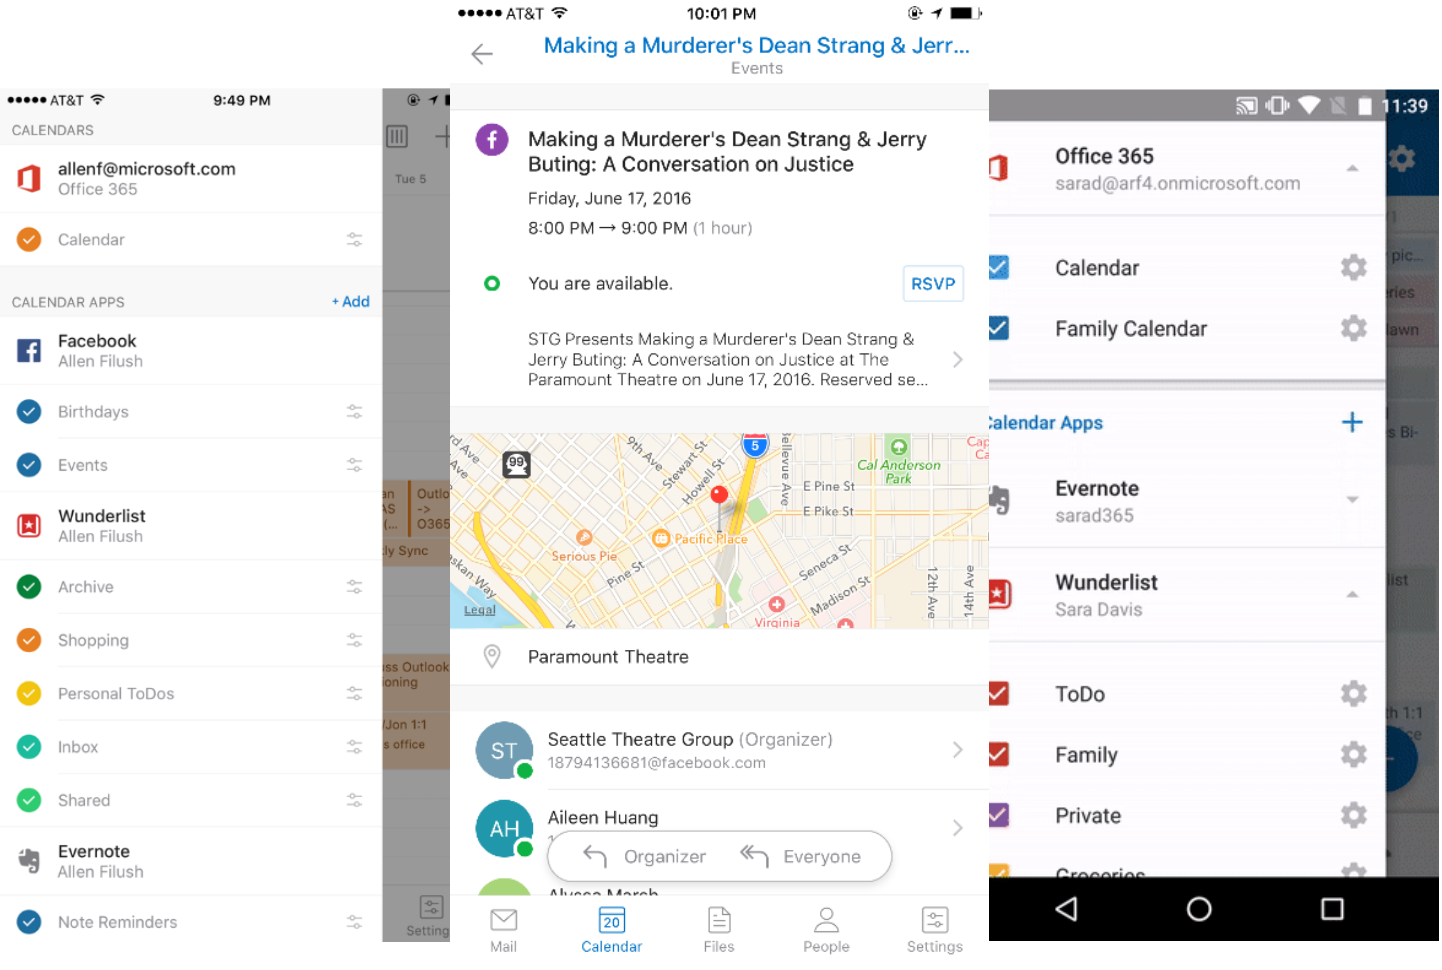 Microsoft launches Calendar Apps in Outlook for iOS and Android as